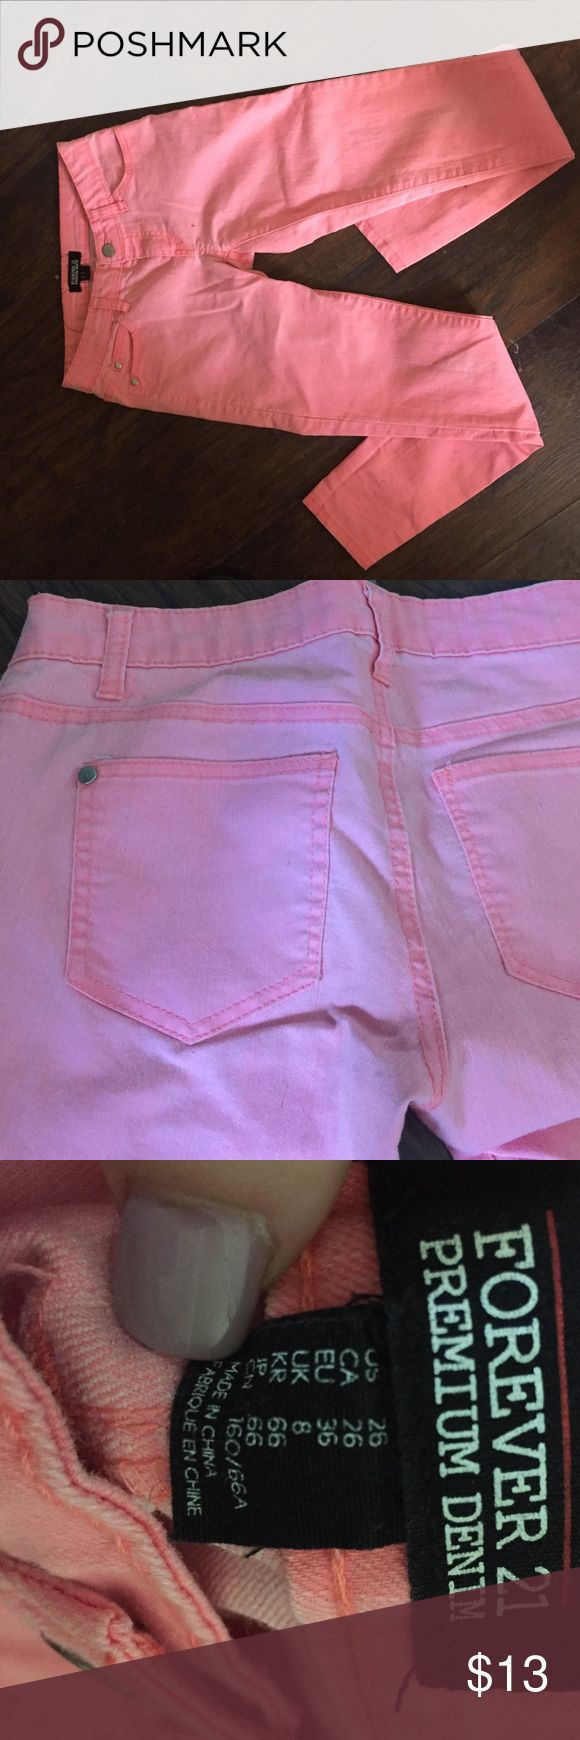 Coral Pink Stretch Jeans Coral Pink Stretch 👖 Jeans Bought and worn once , Great fit! Try bundling to save Forever 21 Jeans Skinny